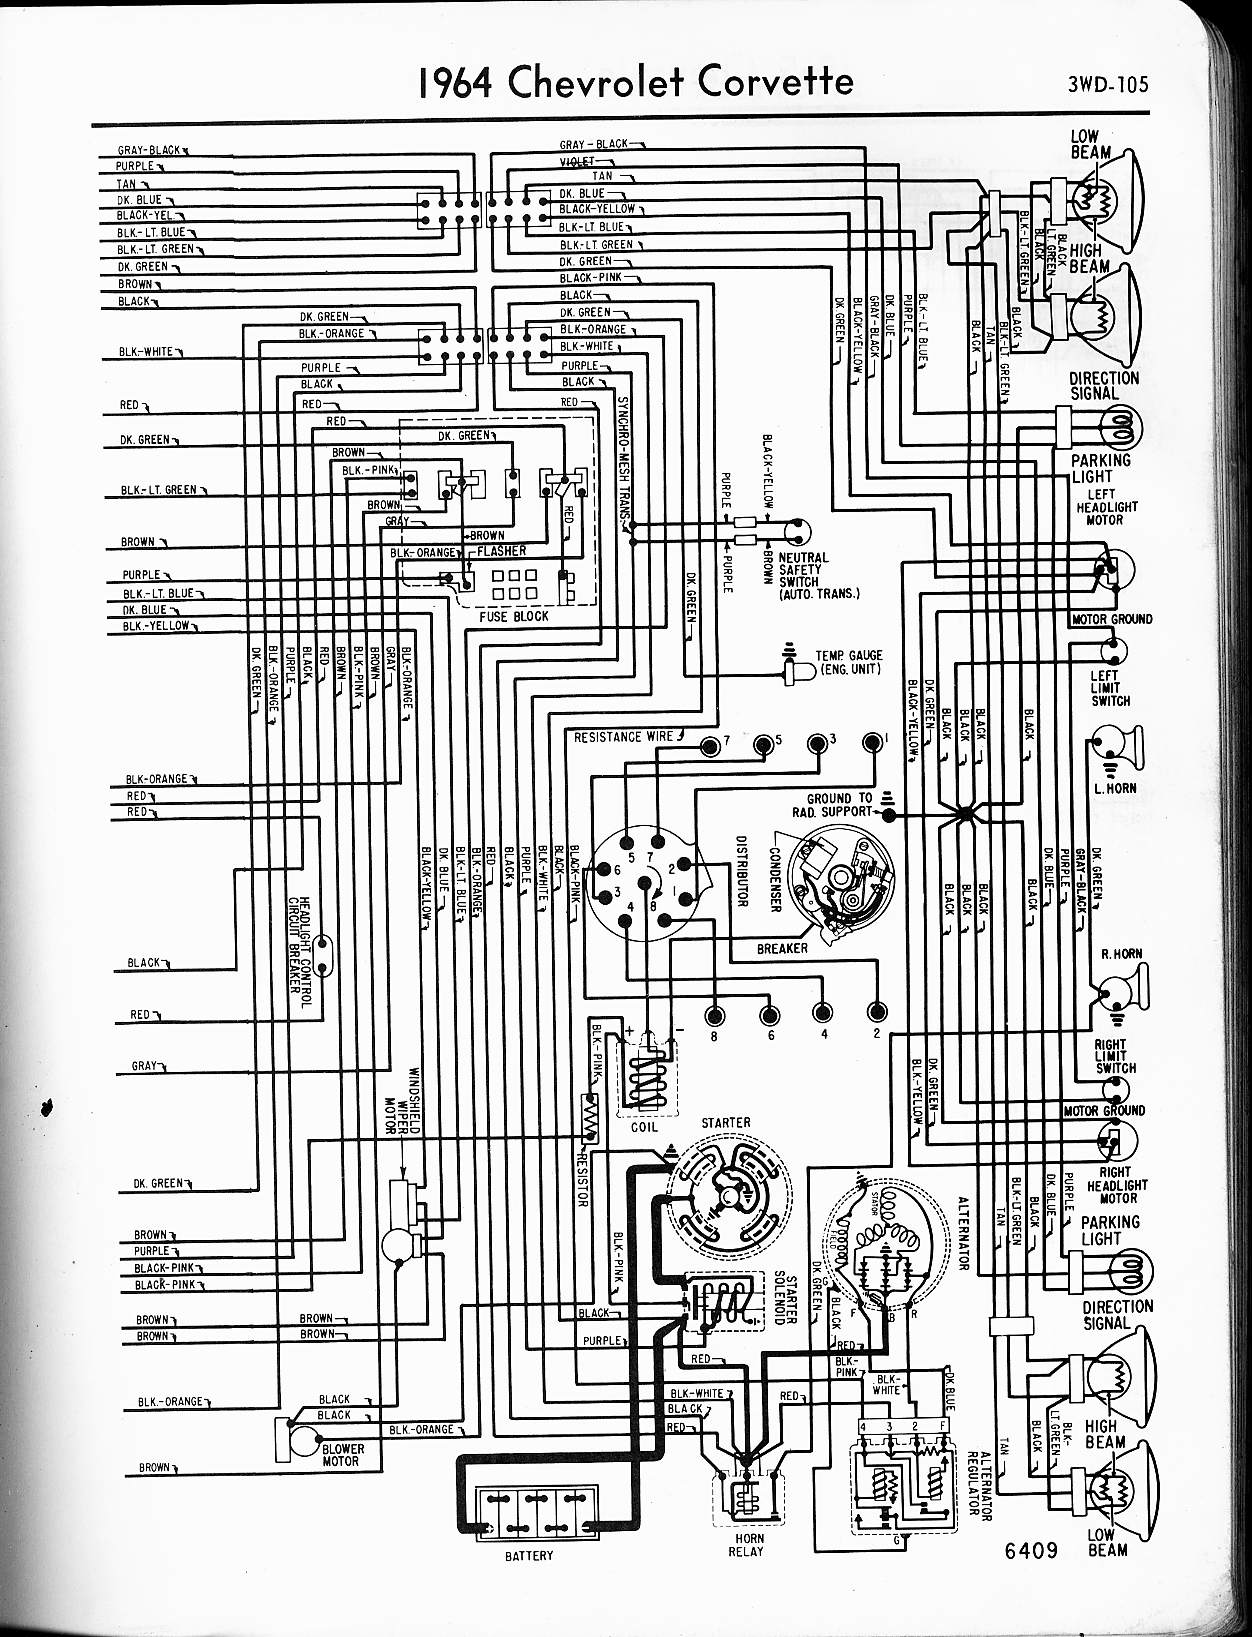 MWireChev64_3WD 105 57 65 chevy wiring diagrams